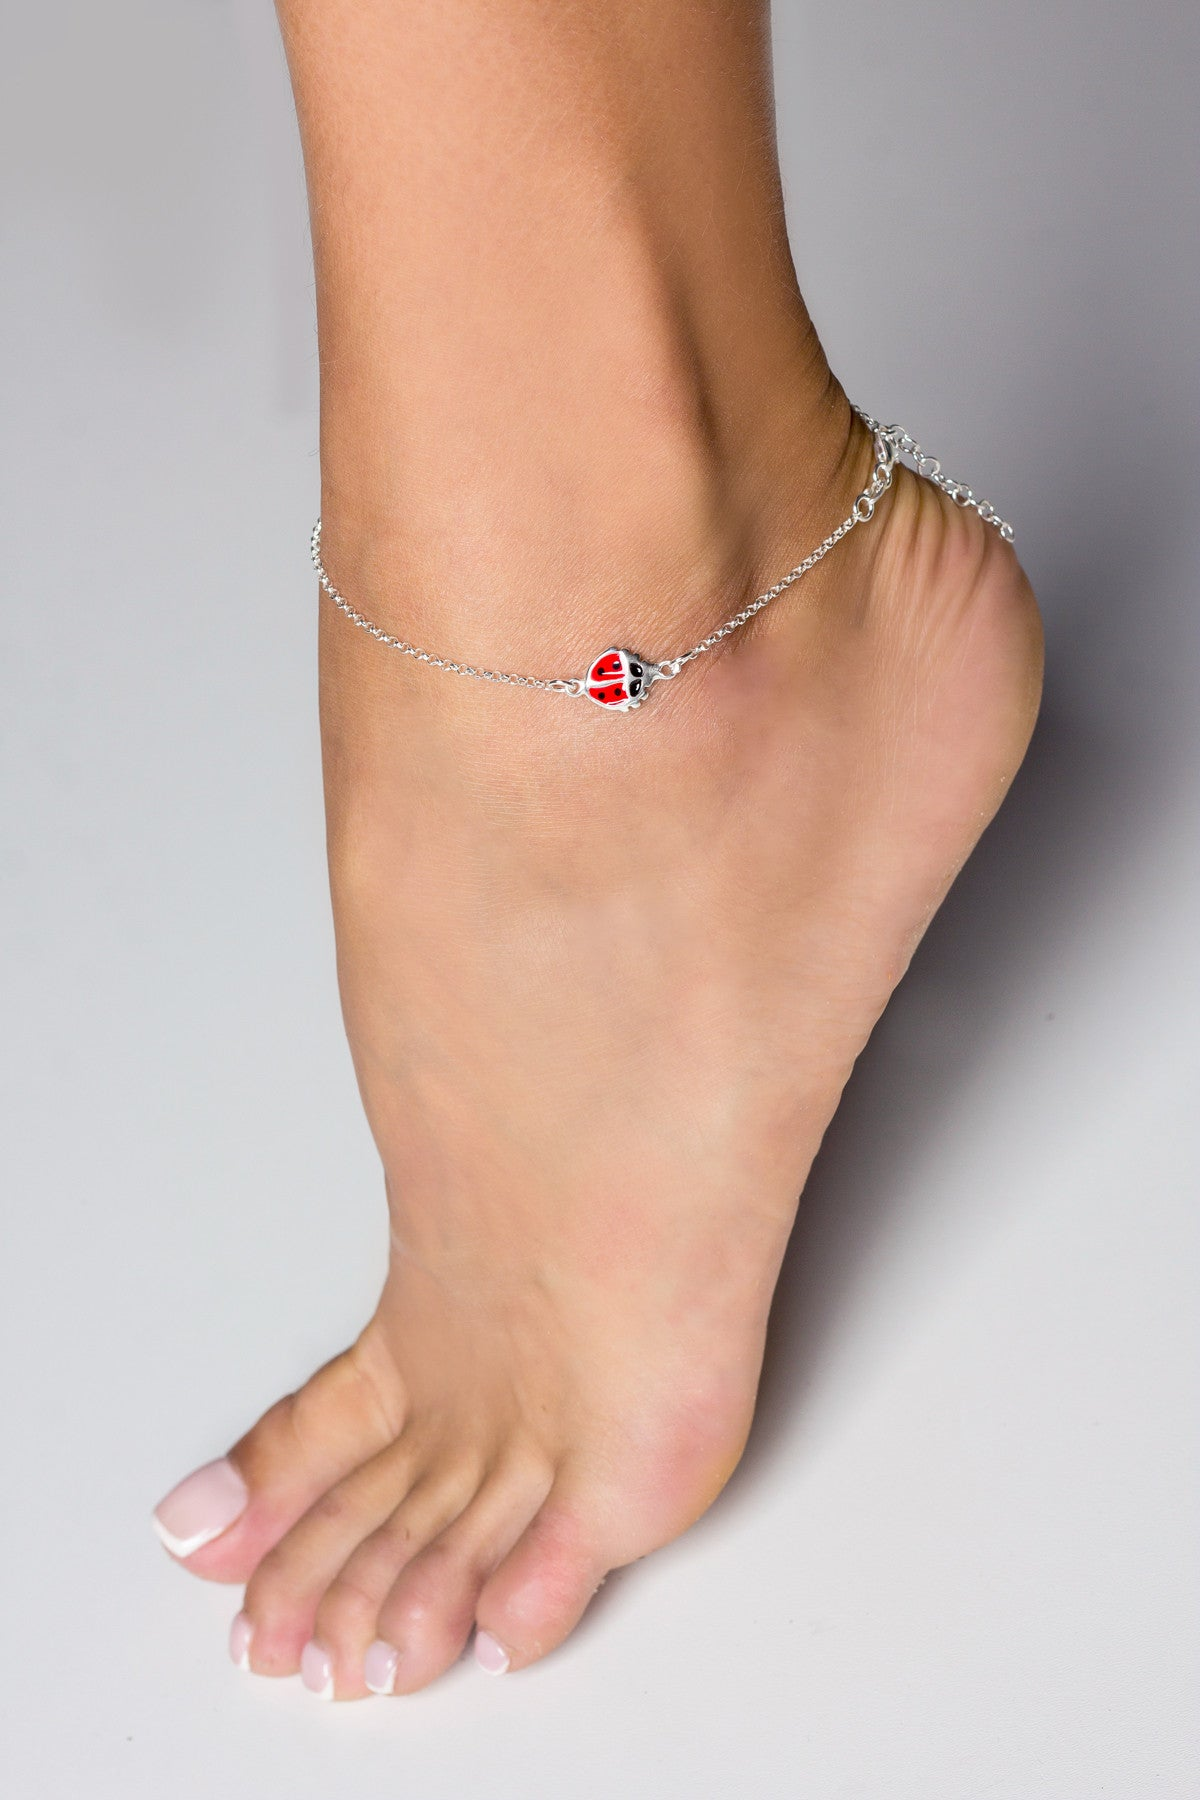 where crystal jewelry ankle sterling bracelets i open bracelet buy az can heart anklet pink bling srn silver